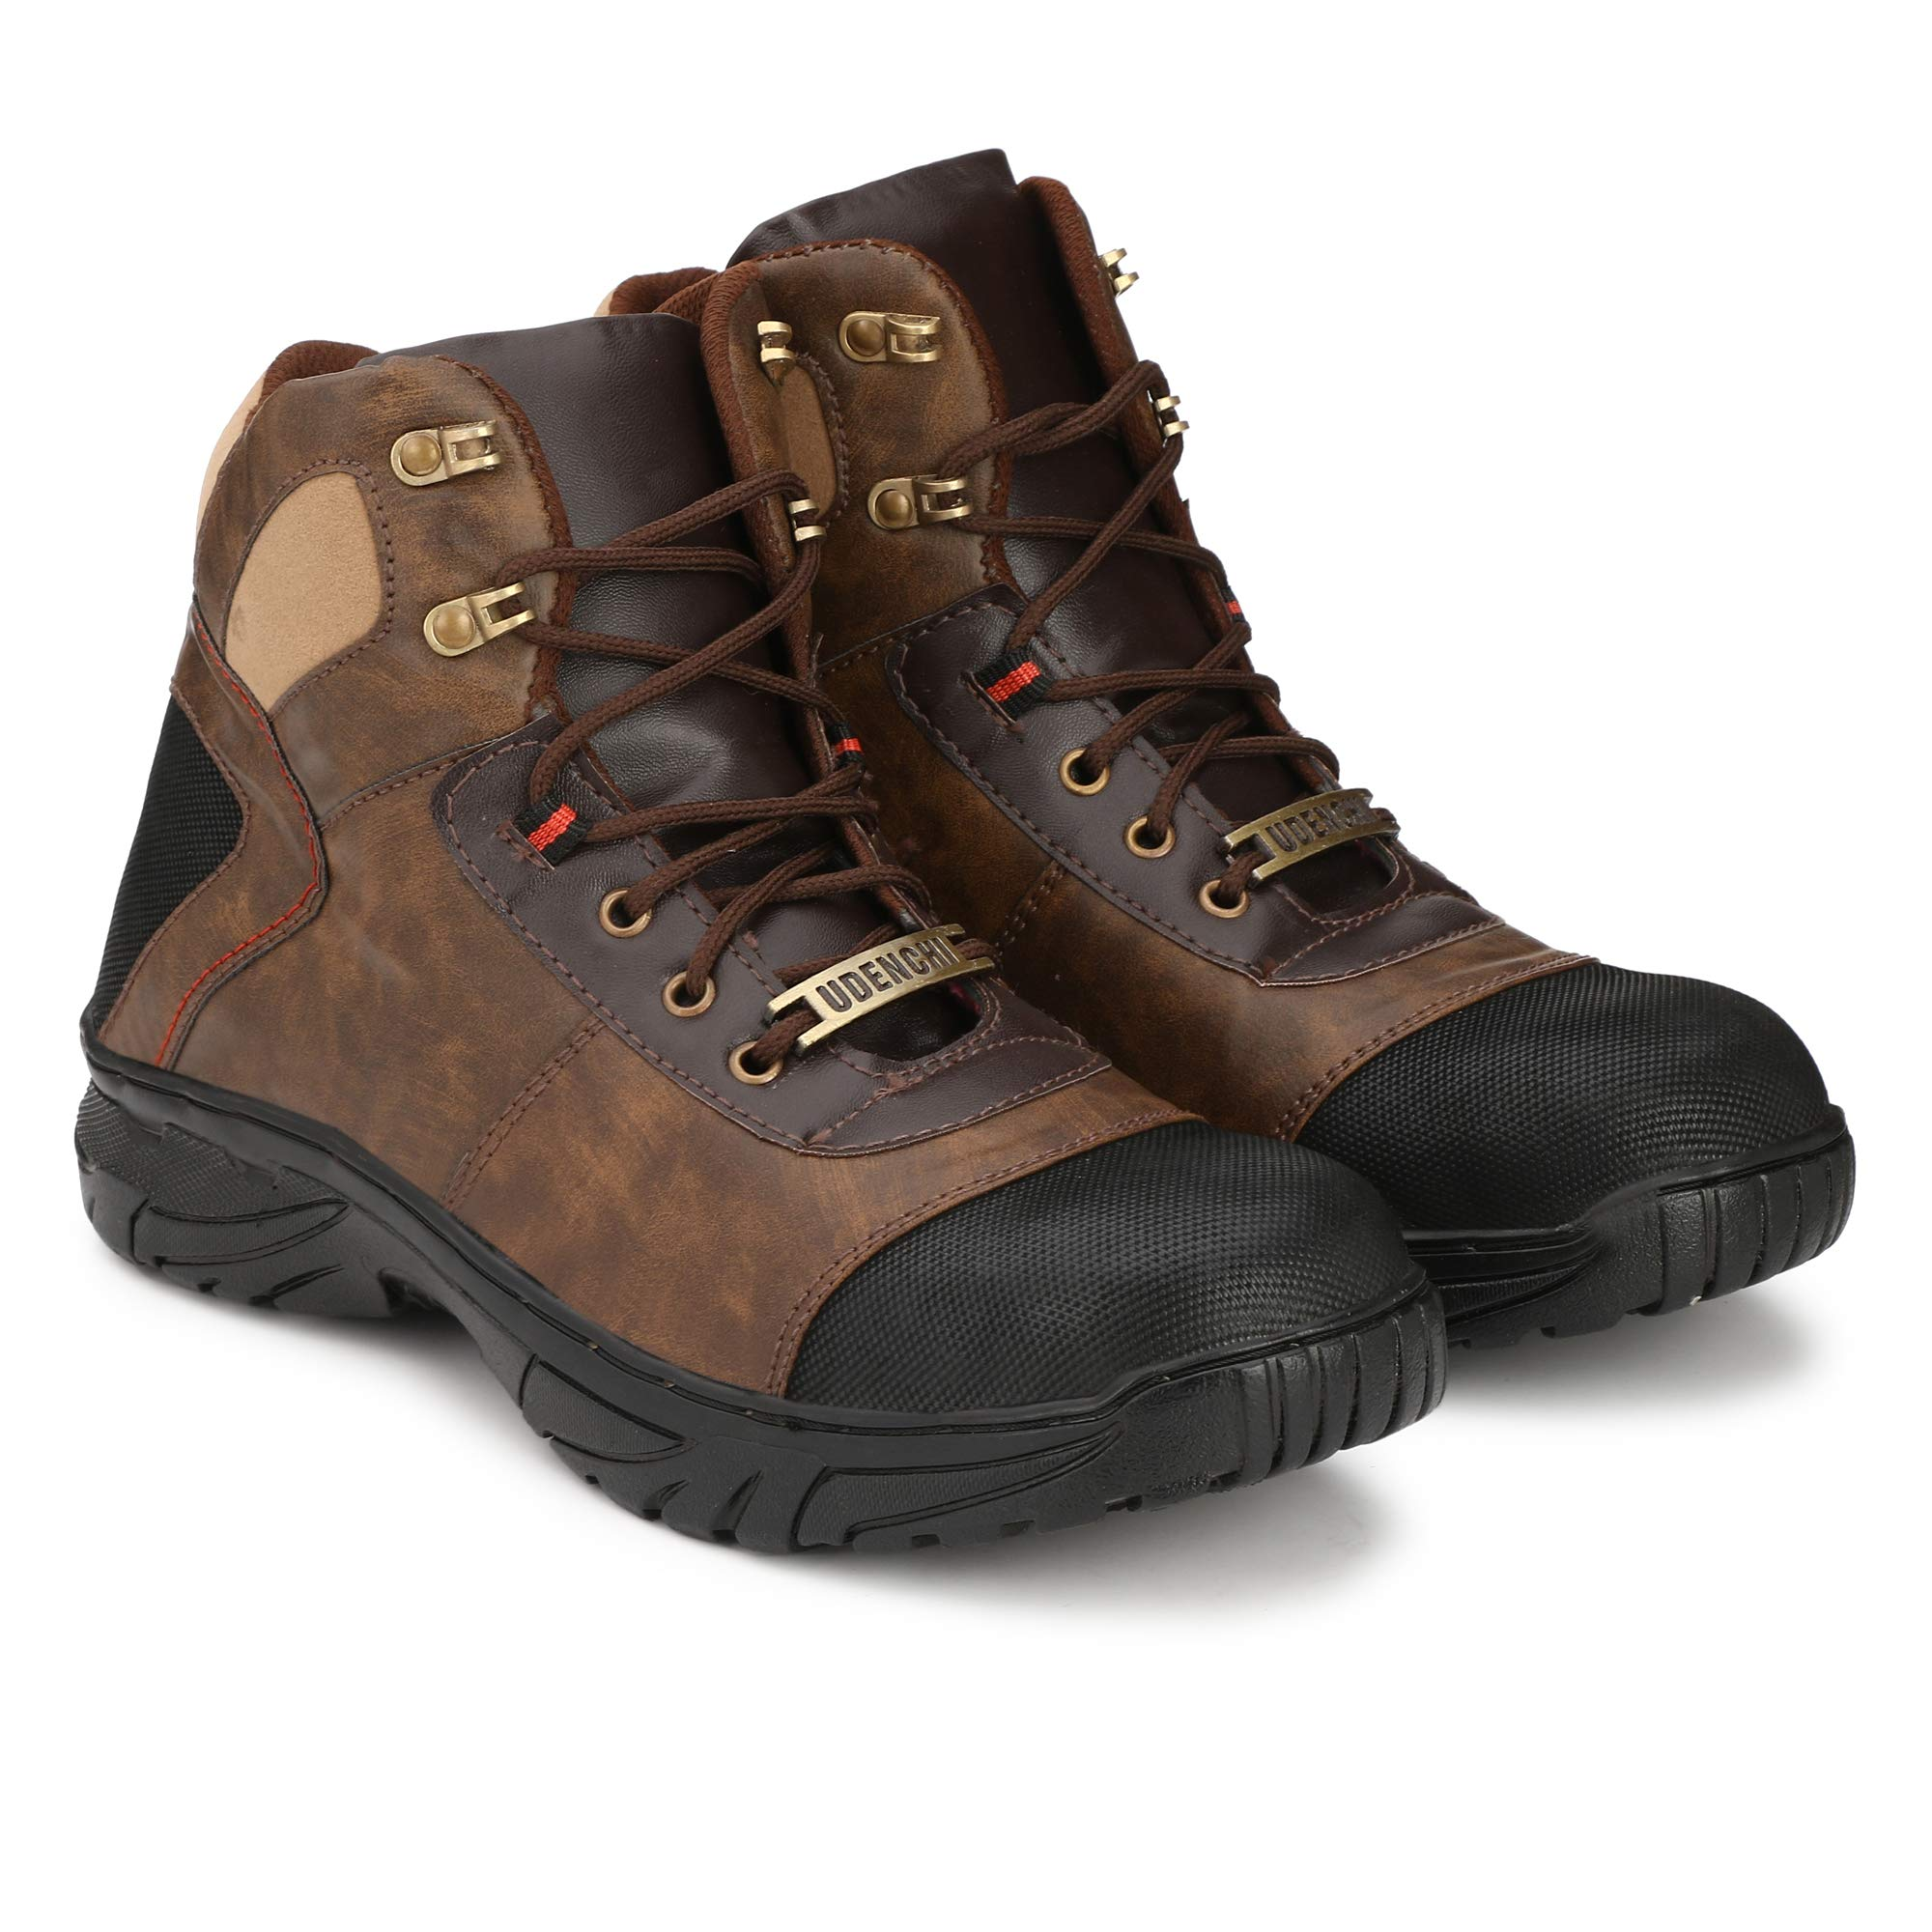 Udenchi UD765BROWN7 Steel Toe Safety Shoe for Men | Industrial Safety Boot for Man | Size-7 UK, Brown (B07T7JLHTQ) Amazon Price History, Amazon Price Tracker